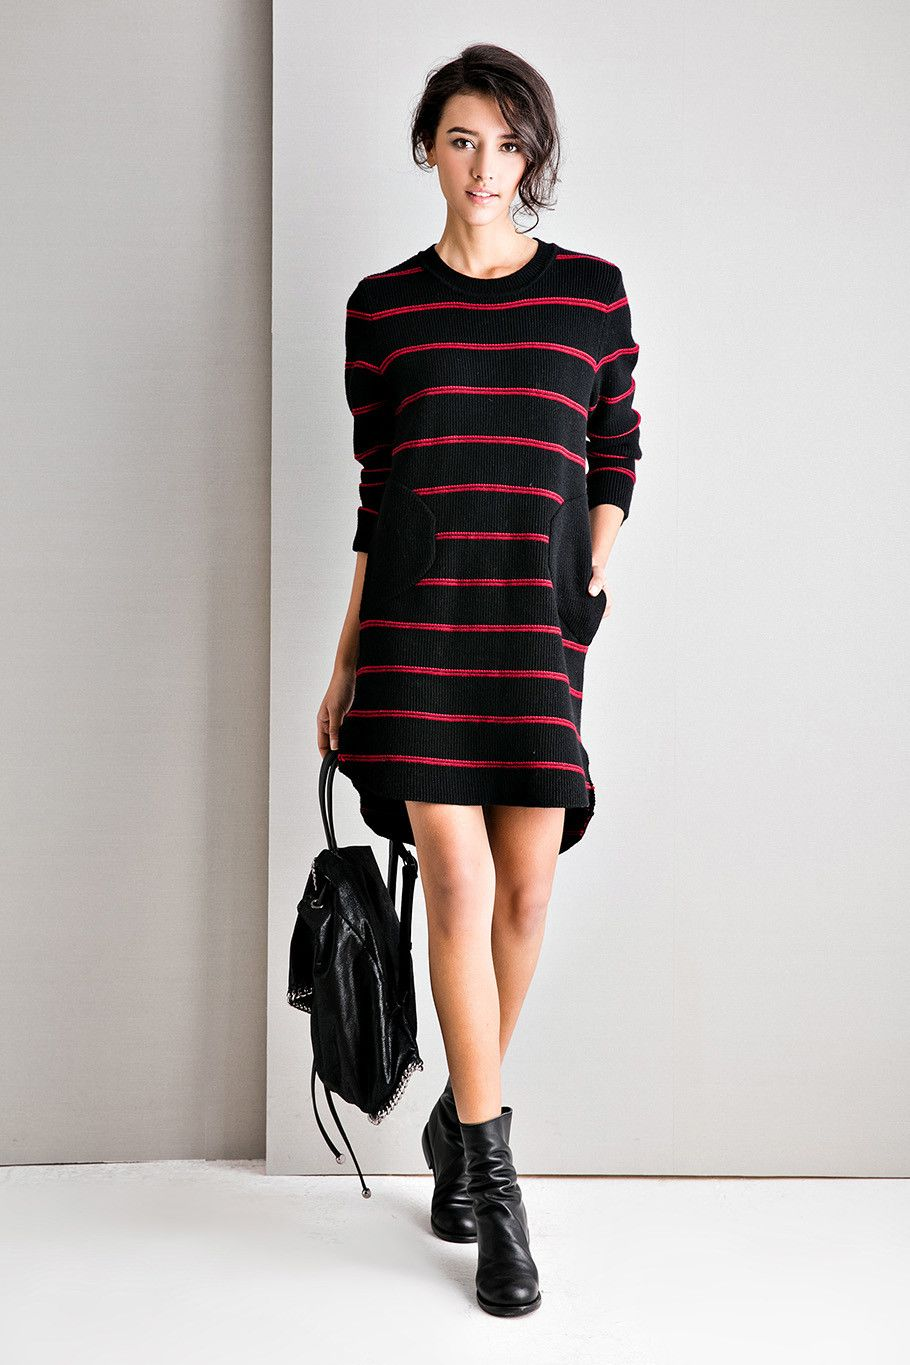 #AdoreWe Few Moda, Minimalistic Fashion Brands Online - Designer Few Moda Left In a Spin Dress DR0672 - AdoreWe.com